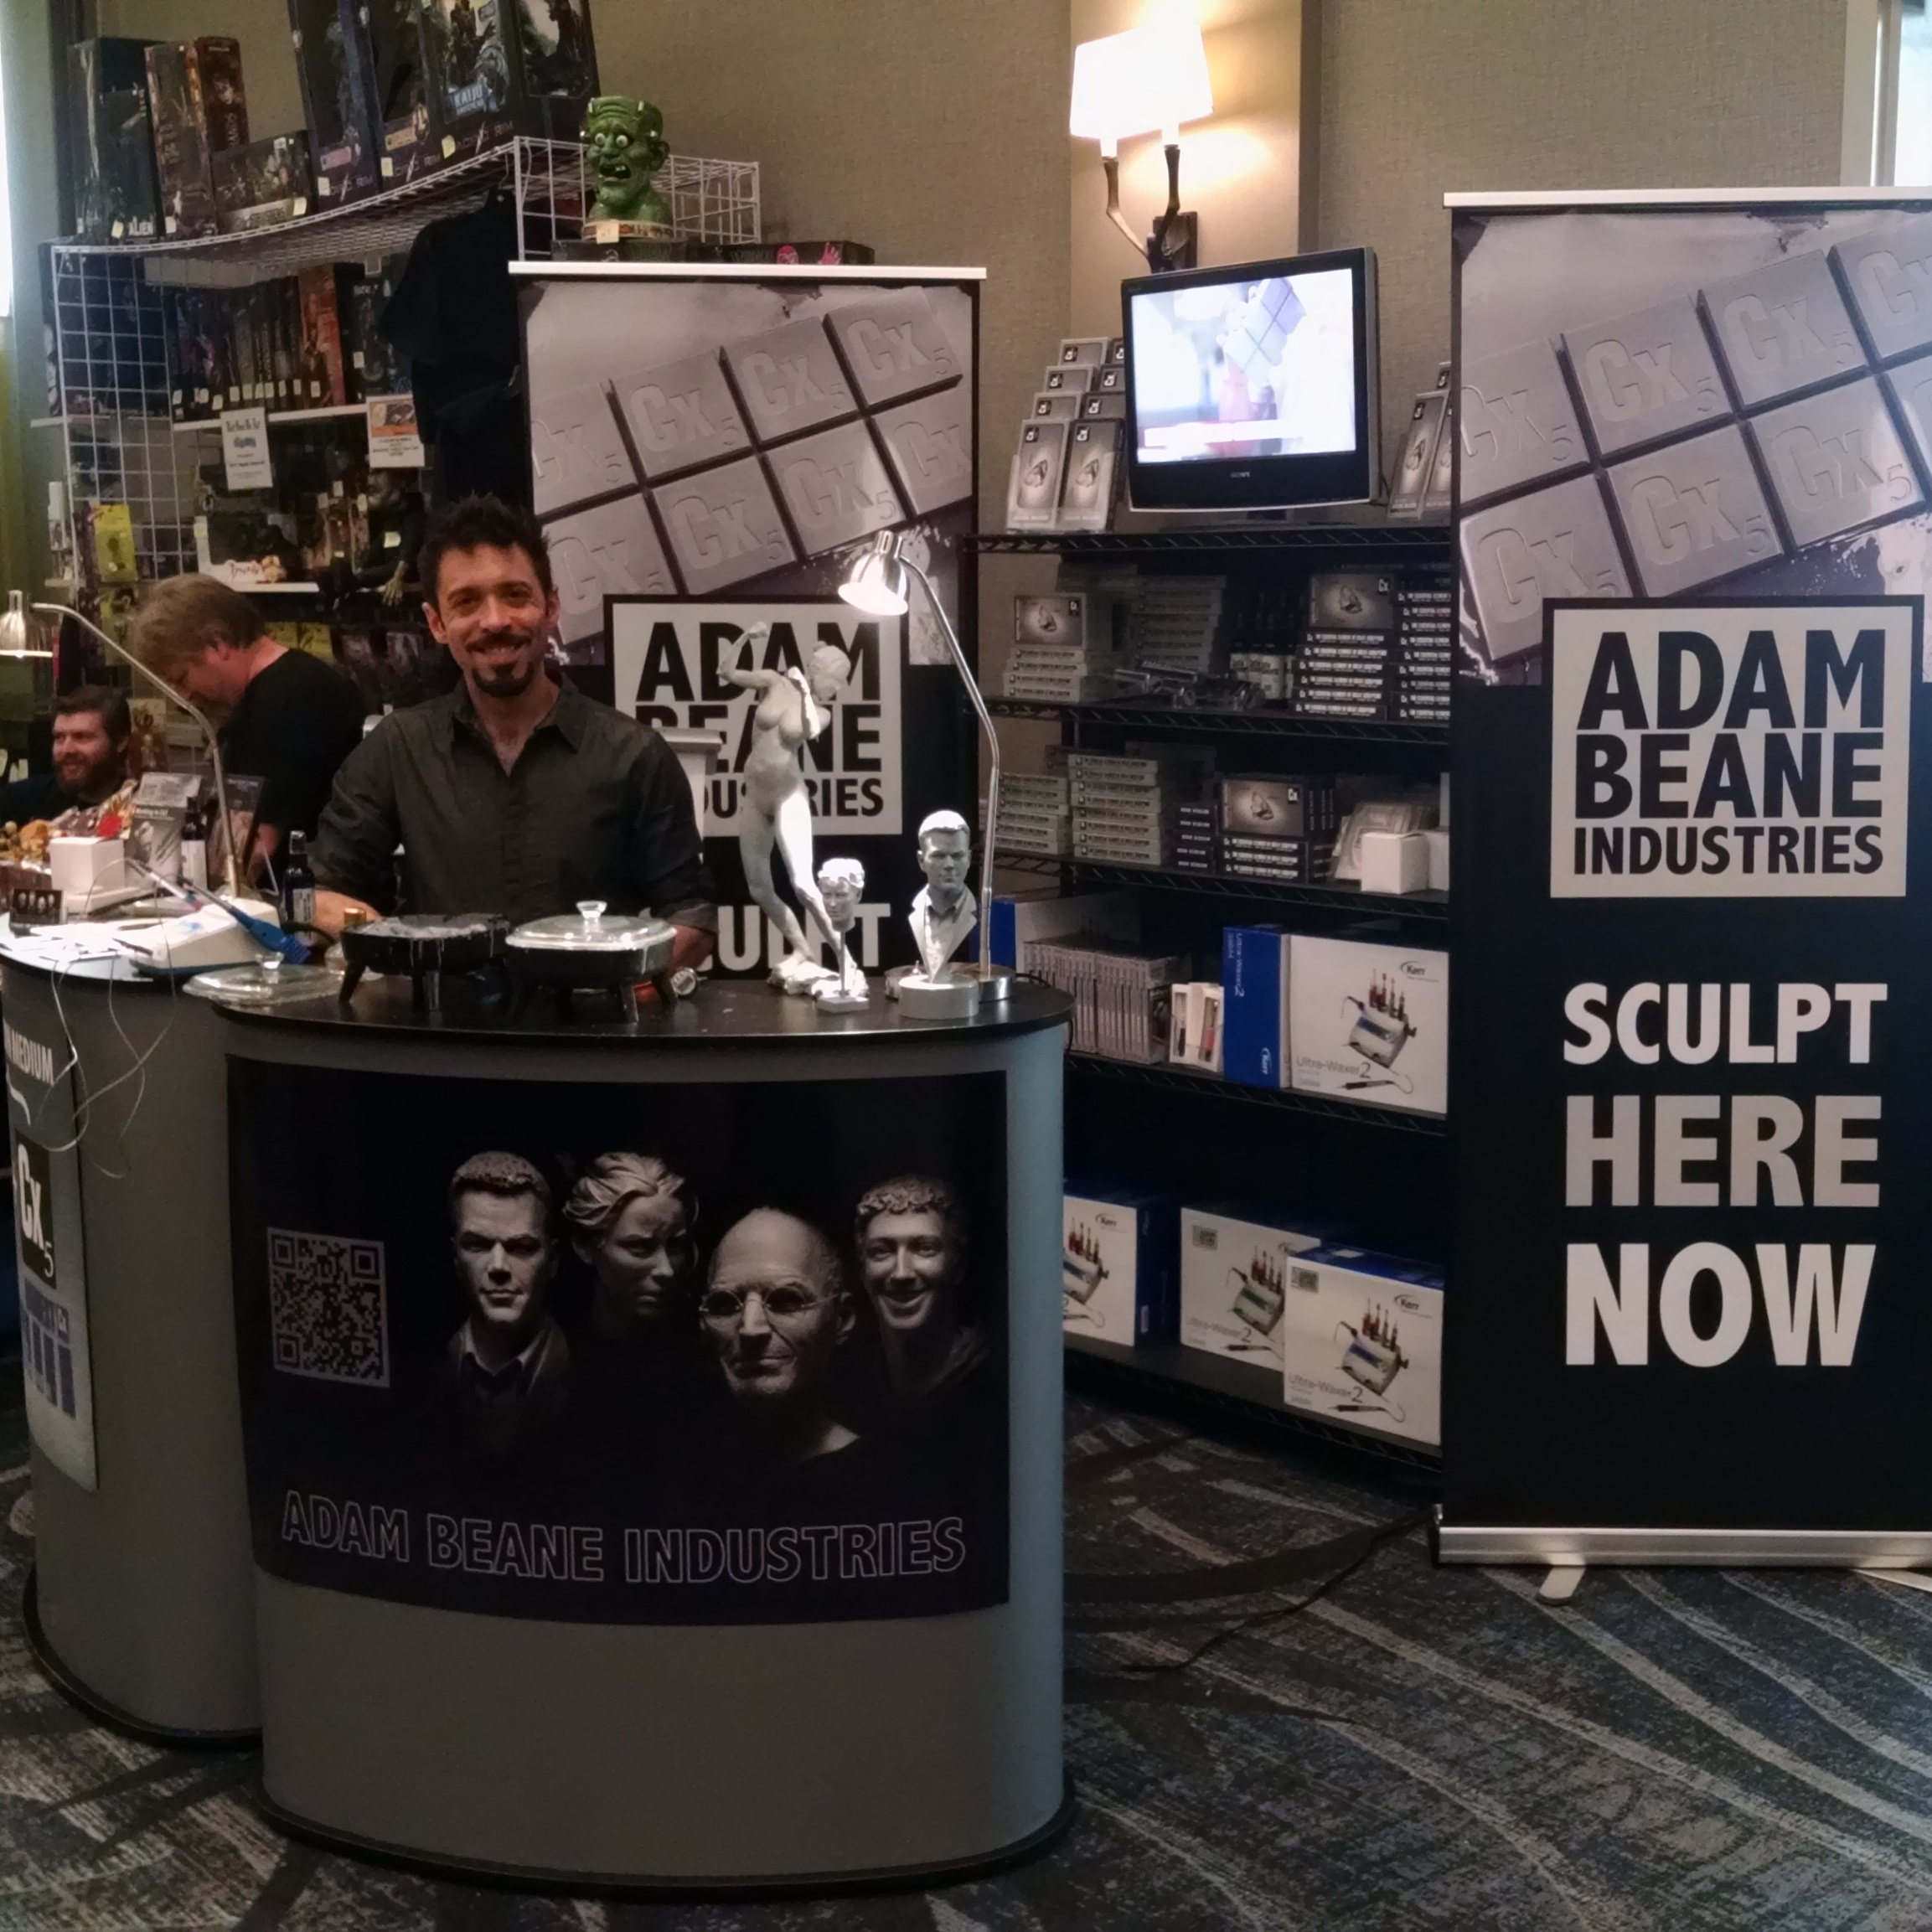 A quick shot of our booth before the crowds rush in